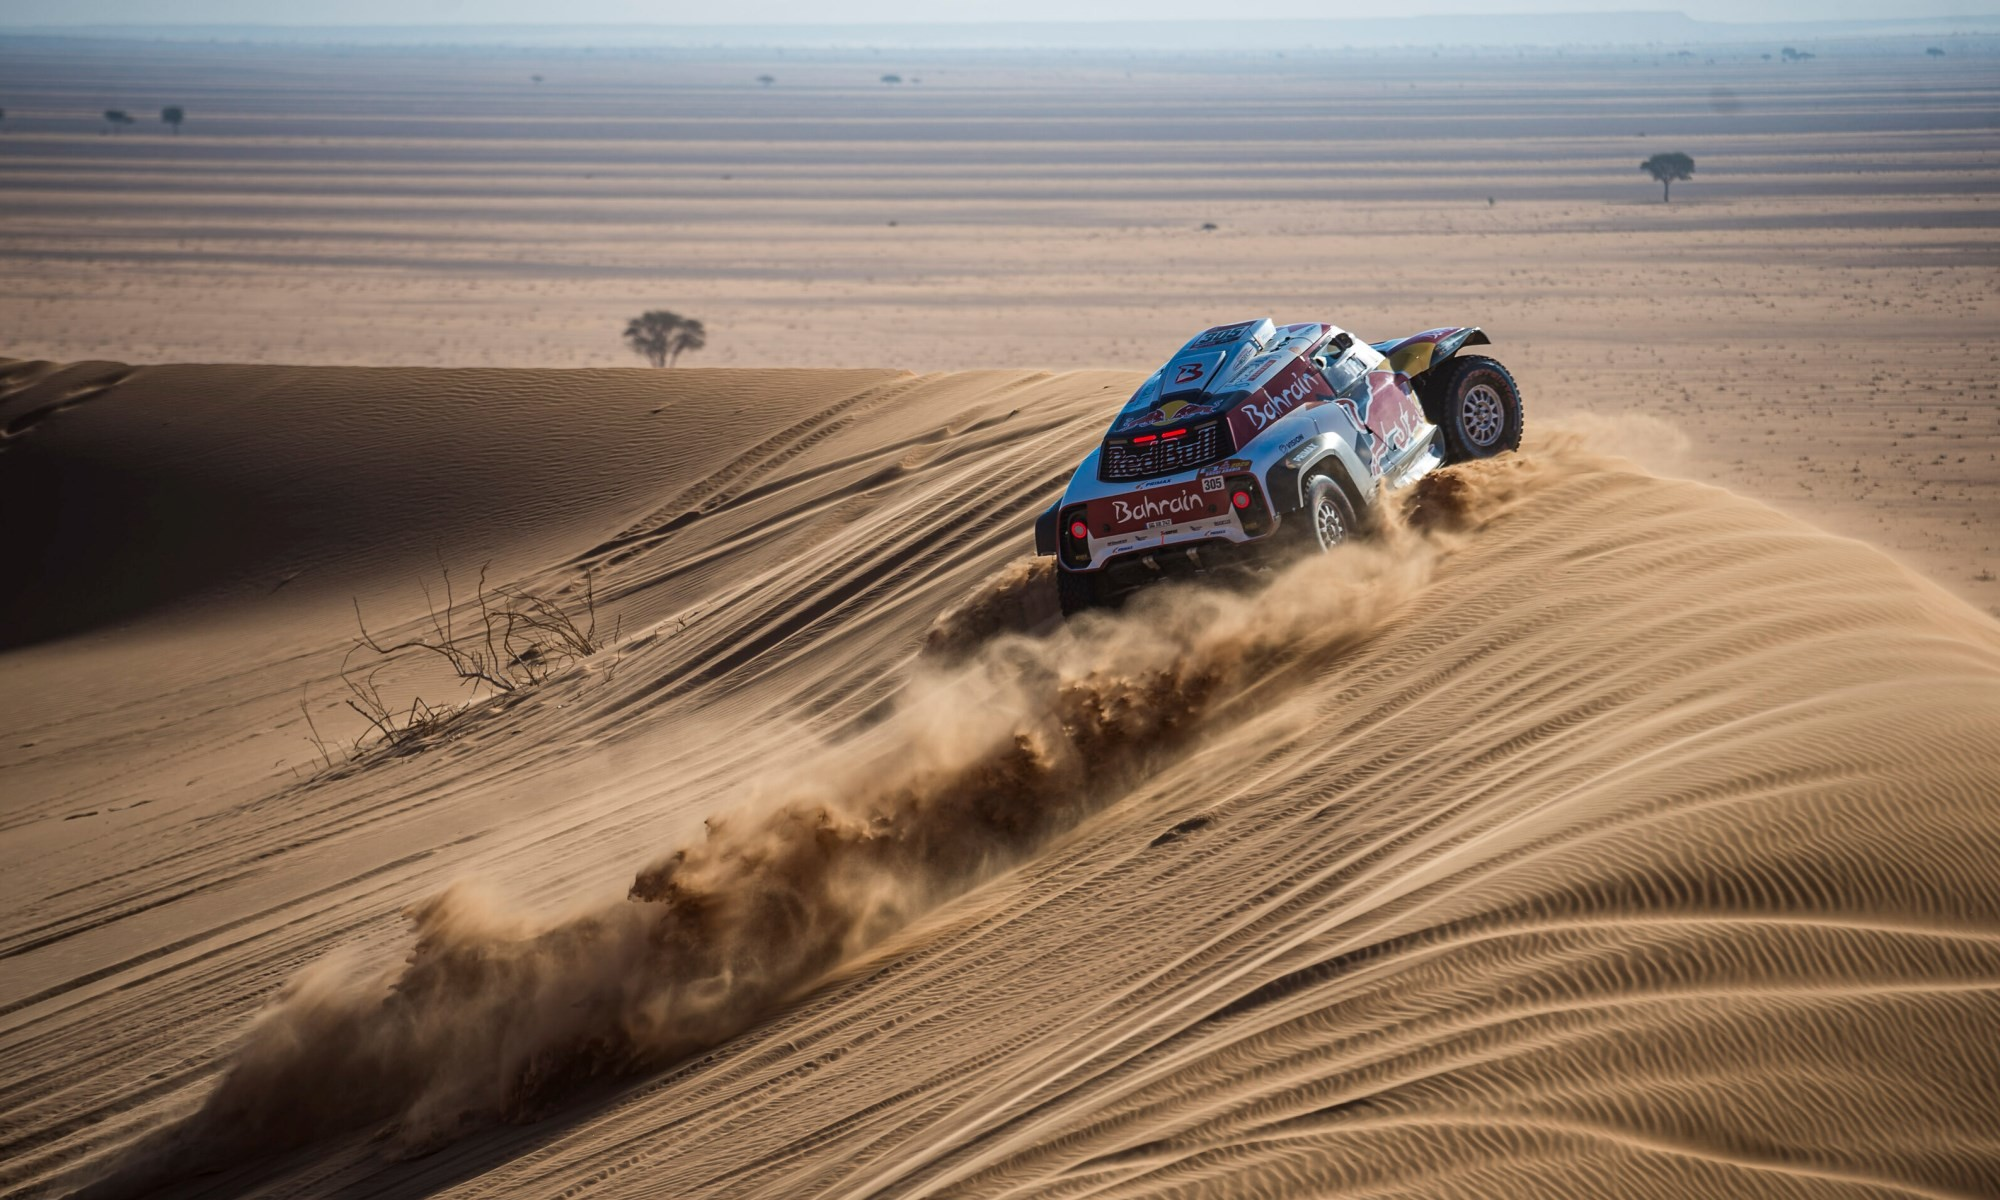 Carlos Sainz was the man to beat on 2020 Dakar Stage 7